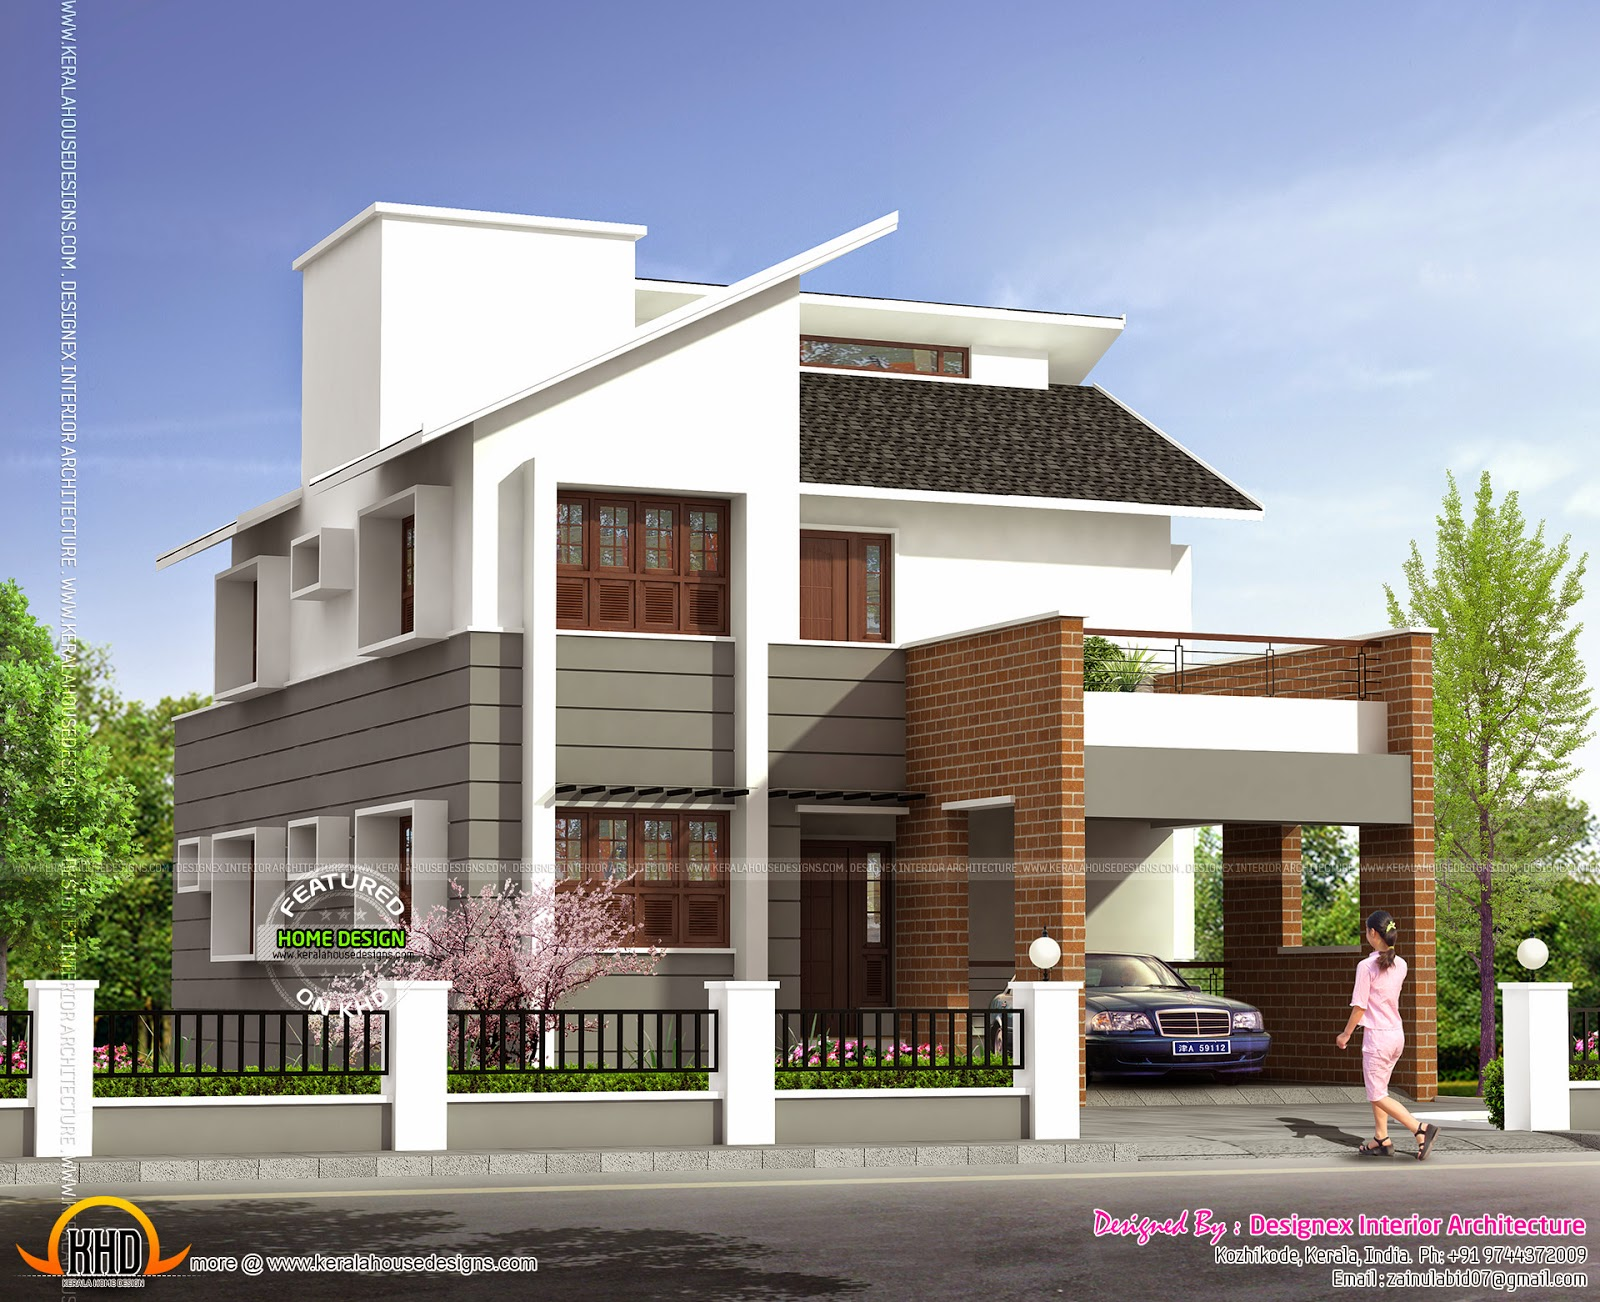 1995 square feet modern house exterior kerala home Design the outside of your house online